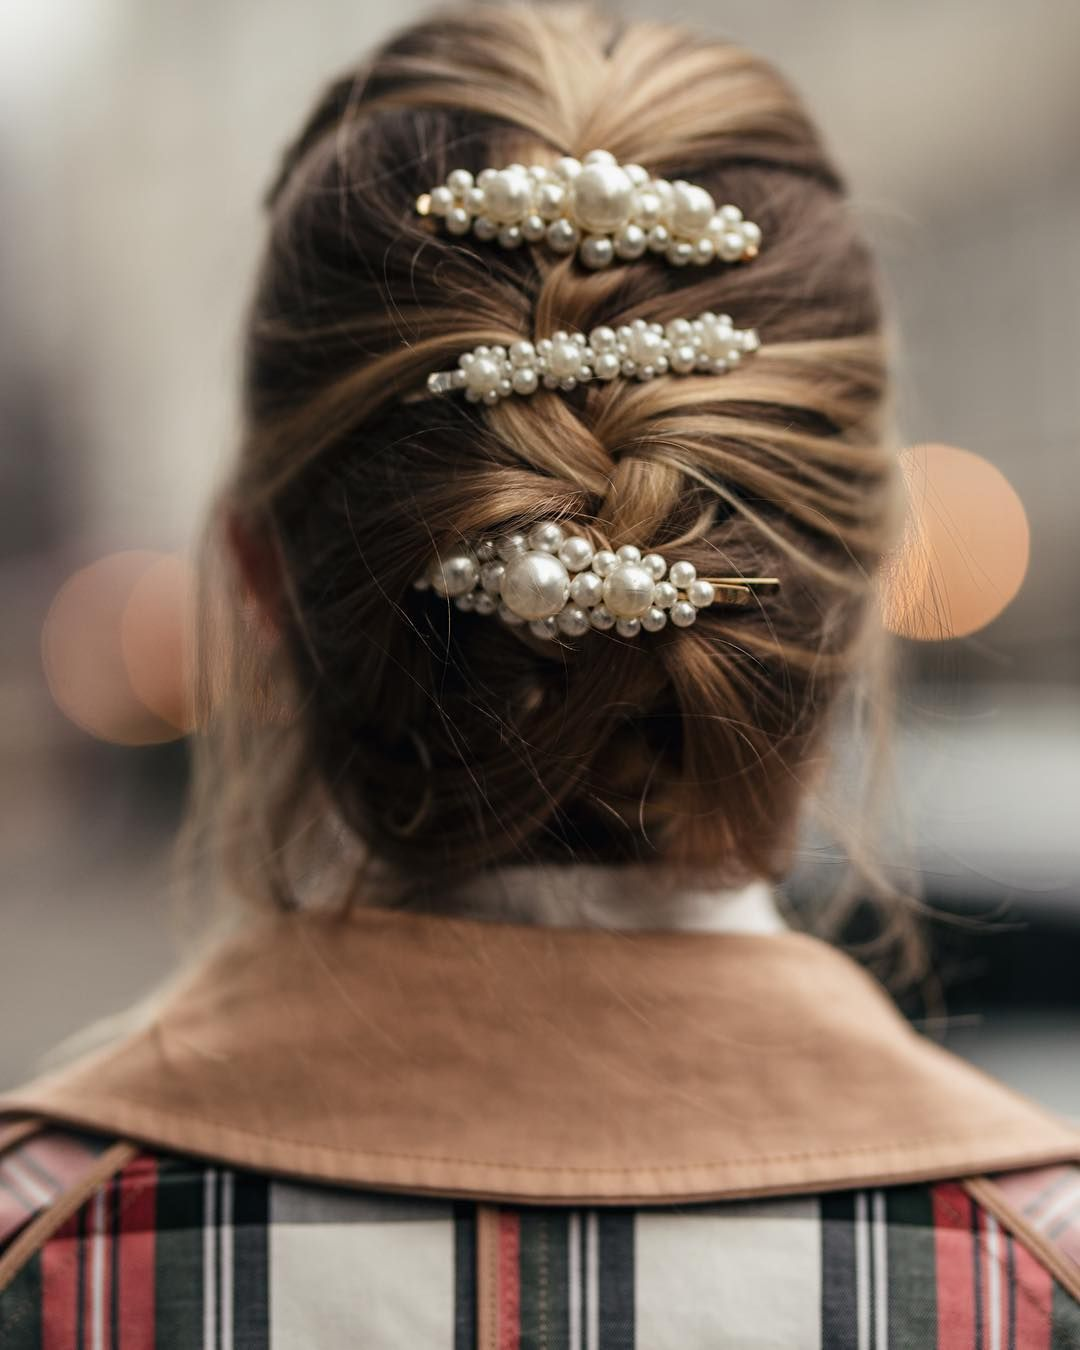 Hair slides are one of the biggest trends this season and if you are one of those people who doesn't want to experiment with different hair colours or lengths this trend is perfect for you.